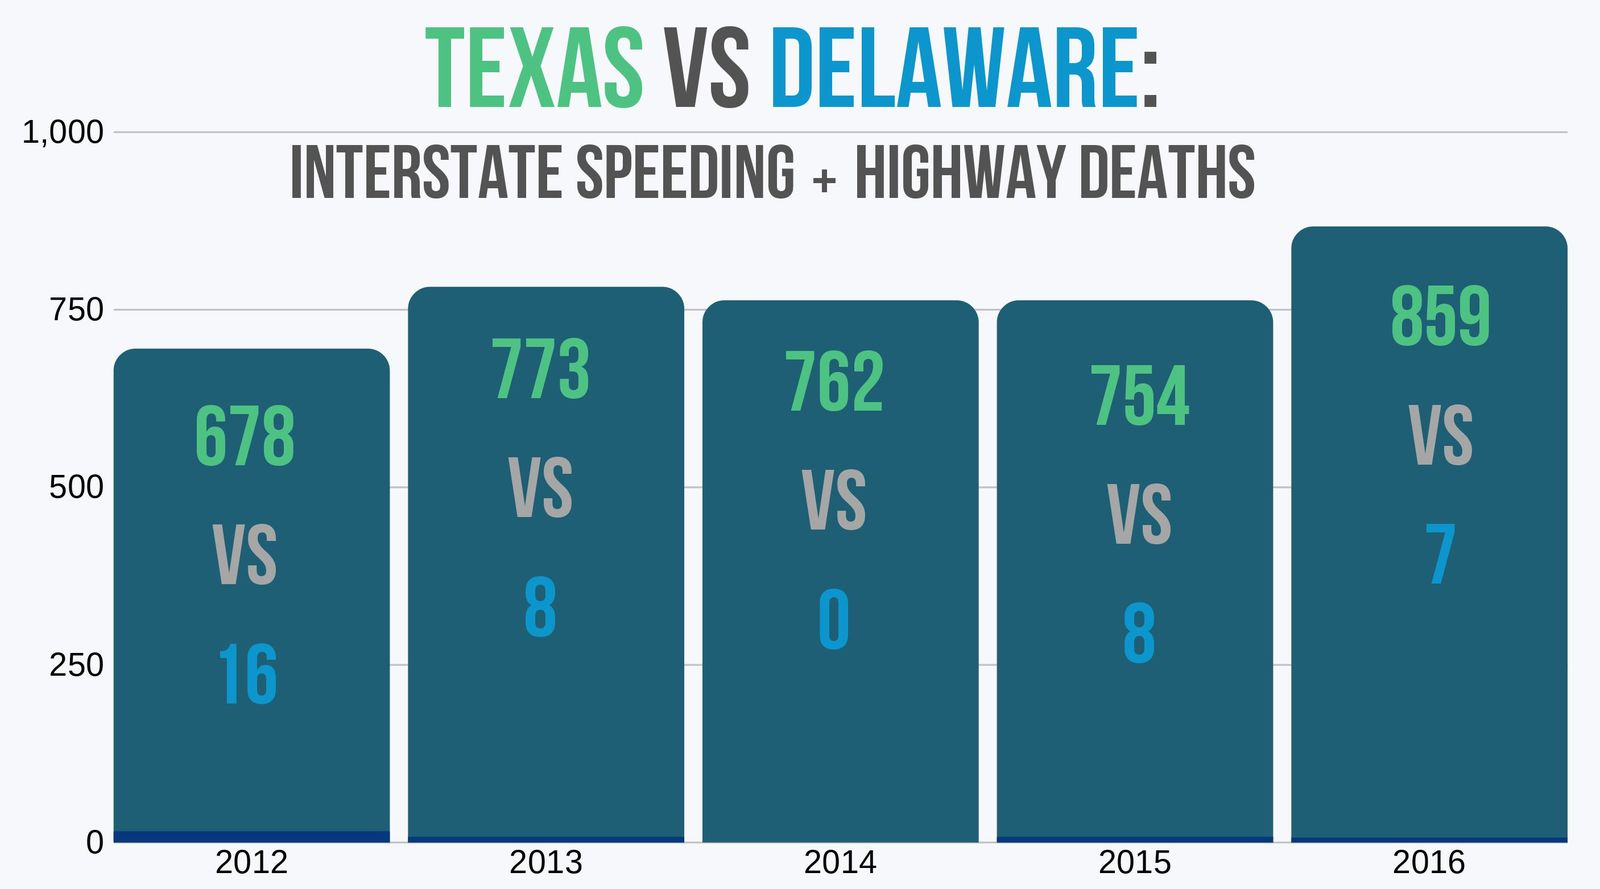 Delaware and Texas' interstate speeding and highway traffic deaths five year trend